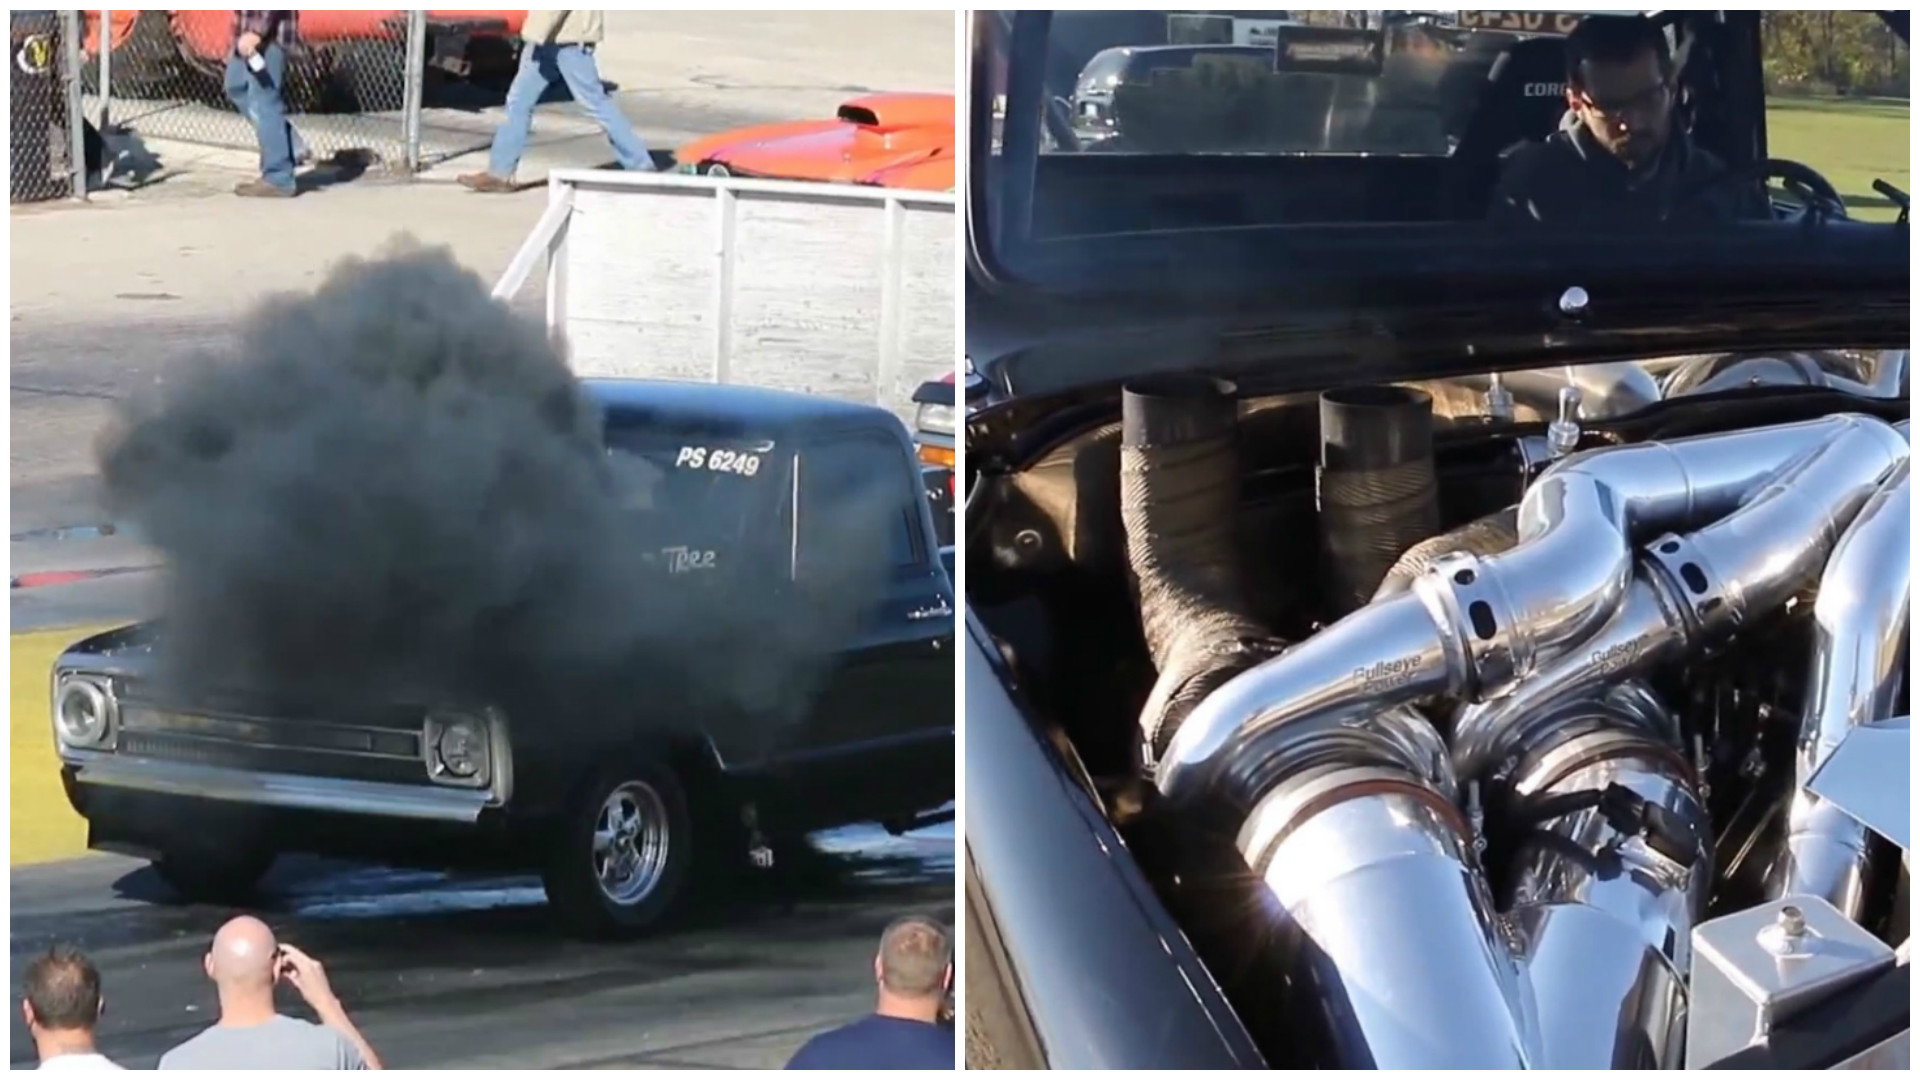 1969 Chevy C10 Features Three Turbochargers And A Duramax Diesel